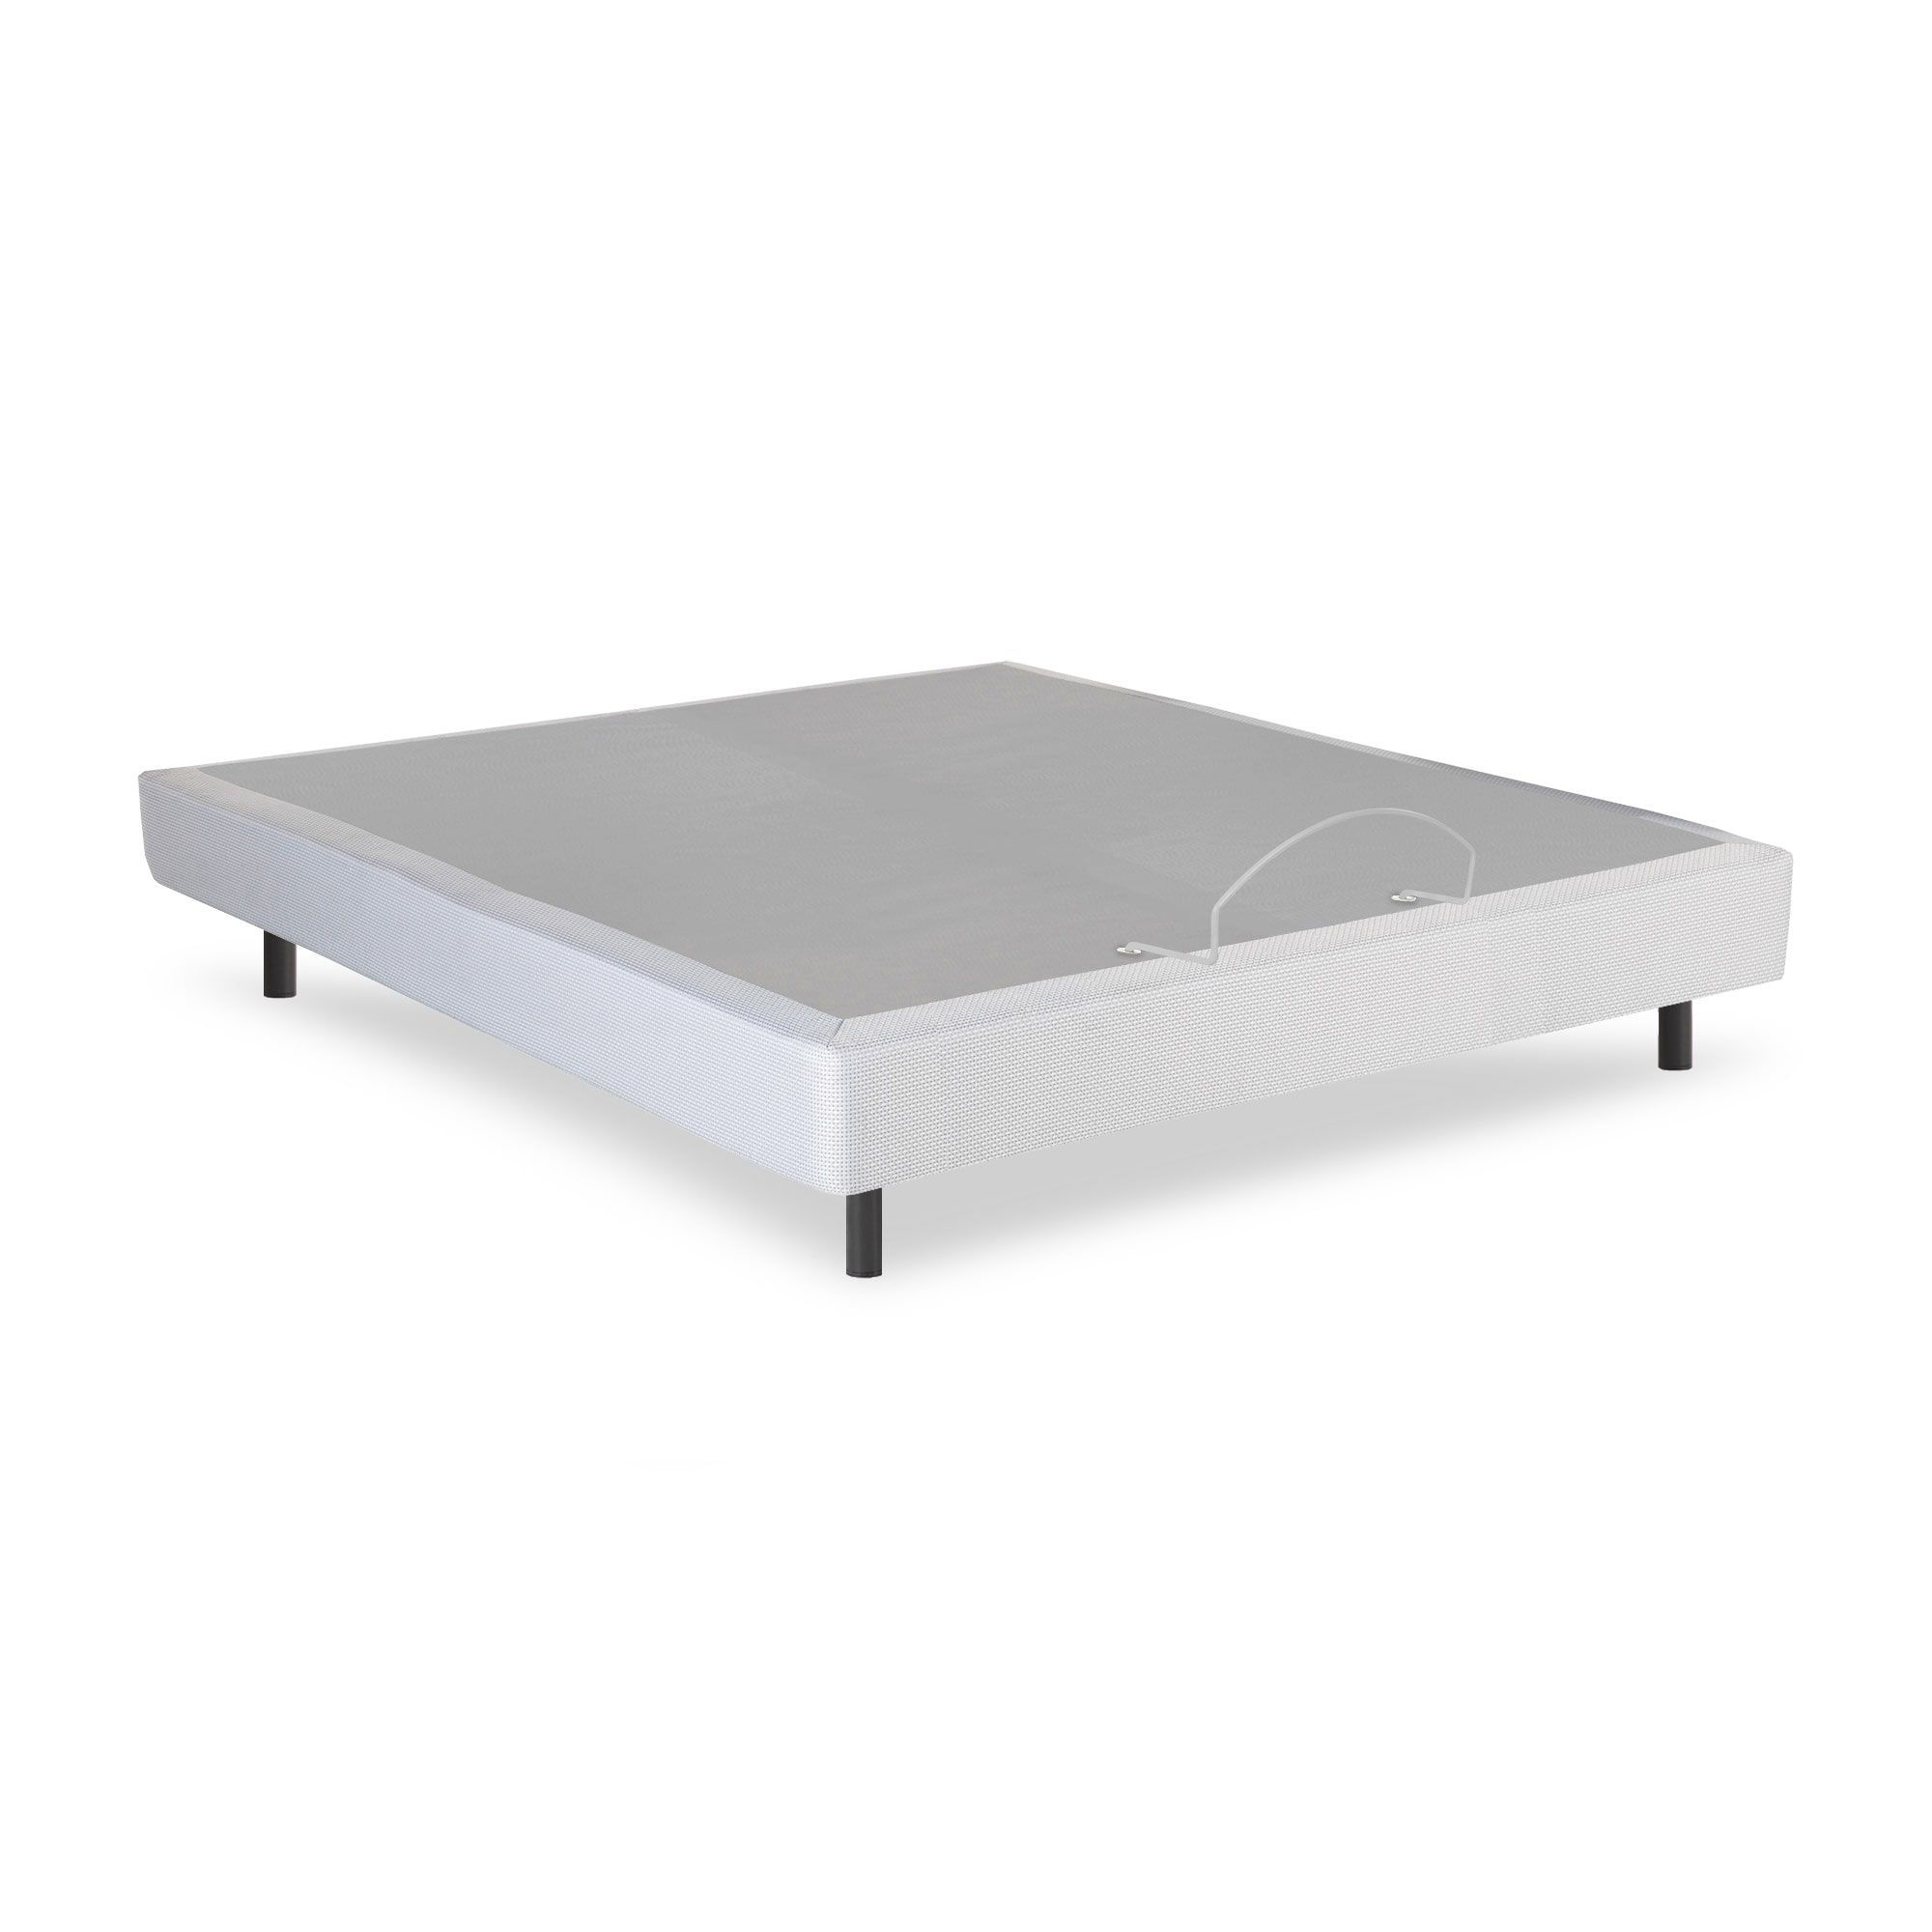 Fashion Bed Group Pro-Motion Grey Finish Adjustable Bed Base with ...